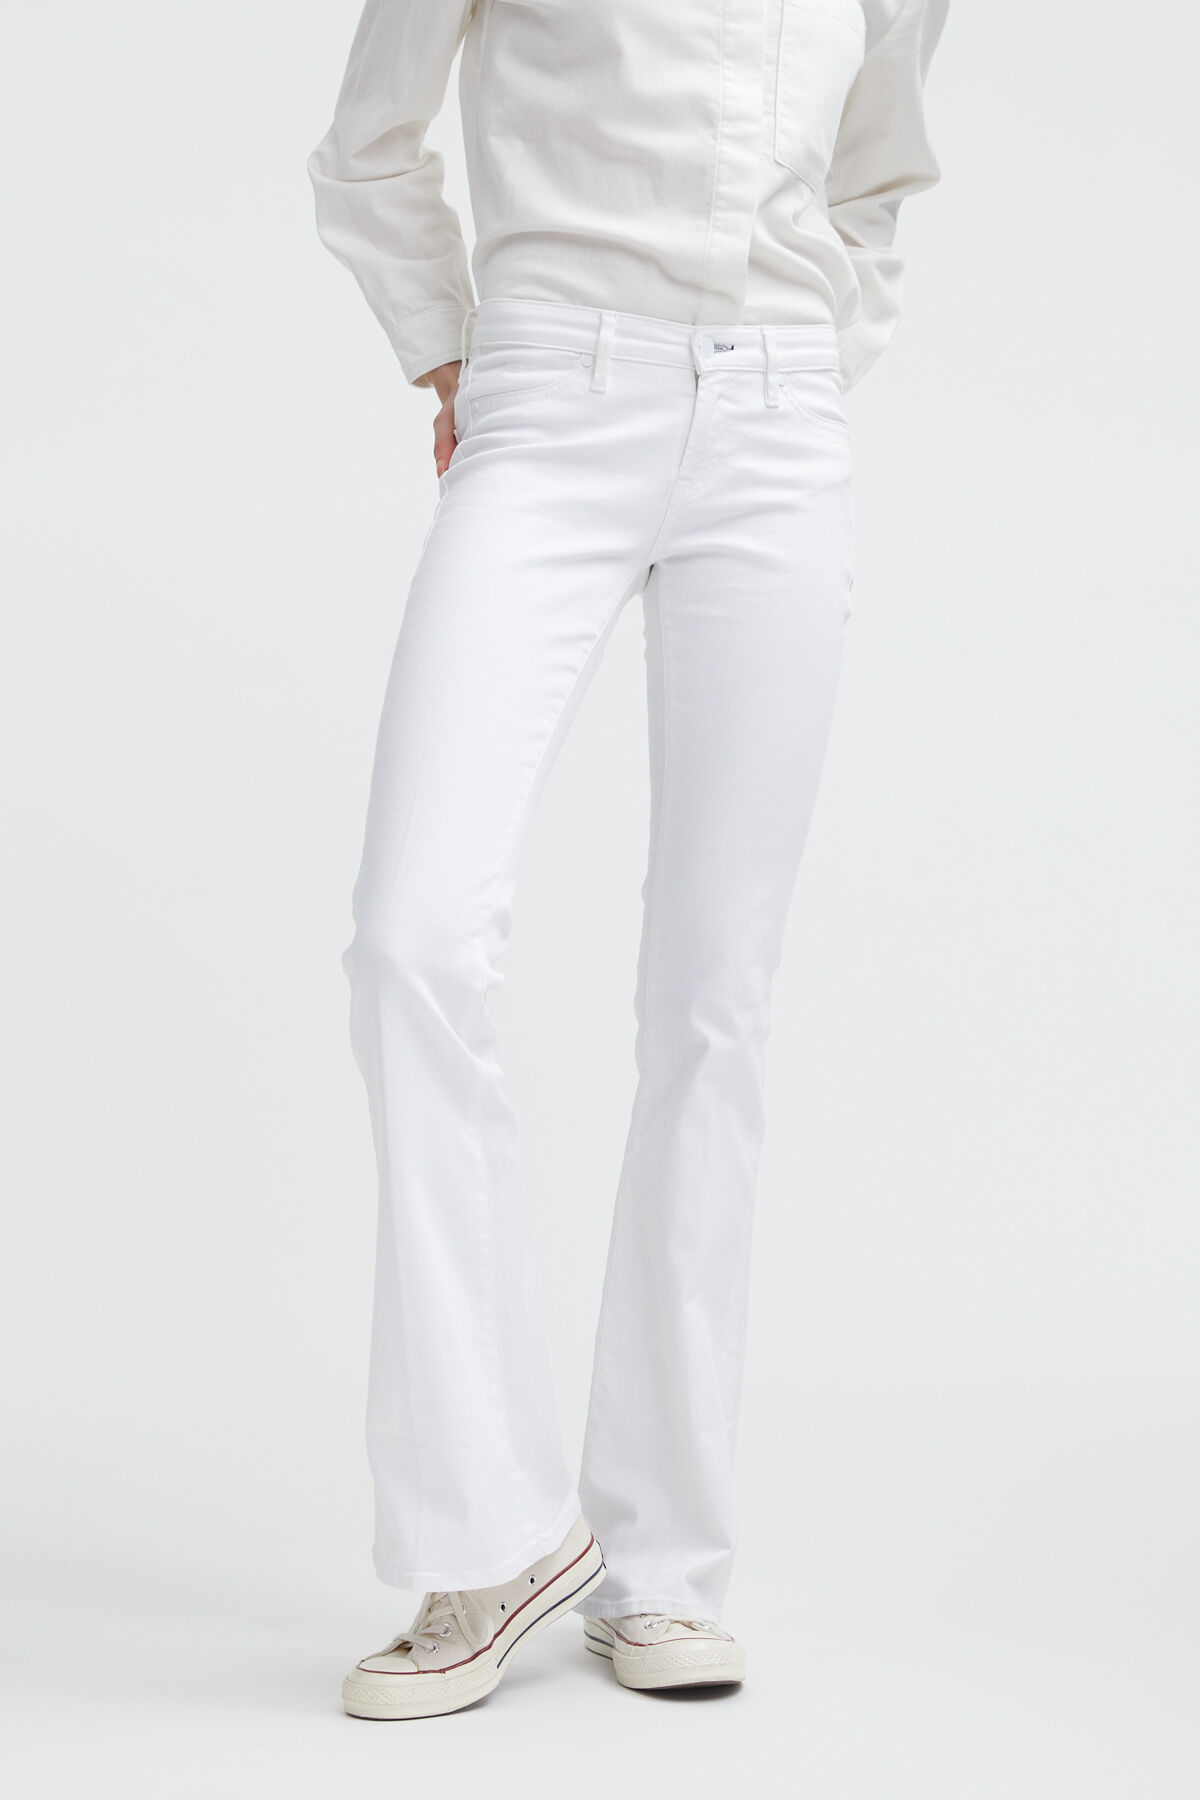 FARRAH Comfort Stretch Denim - Flare Fit